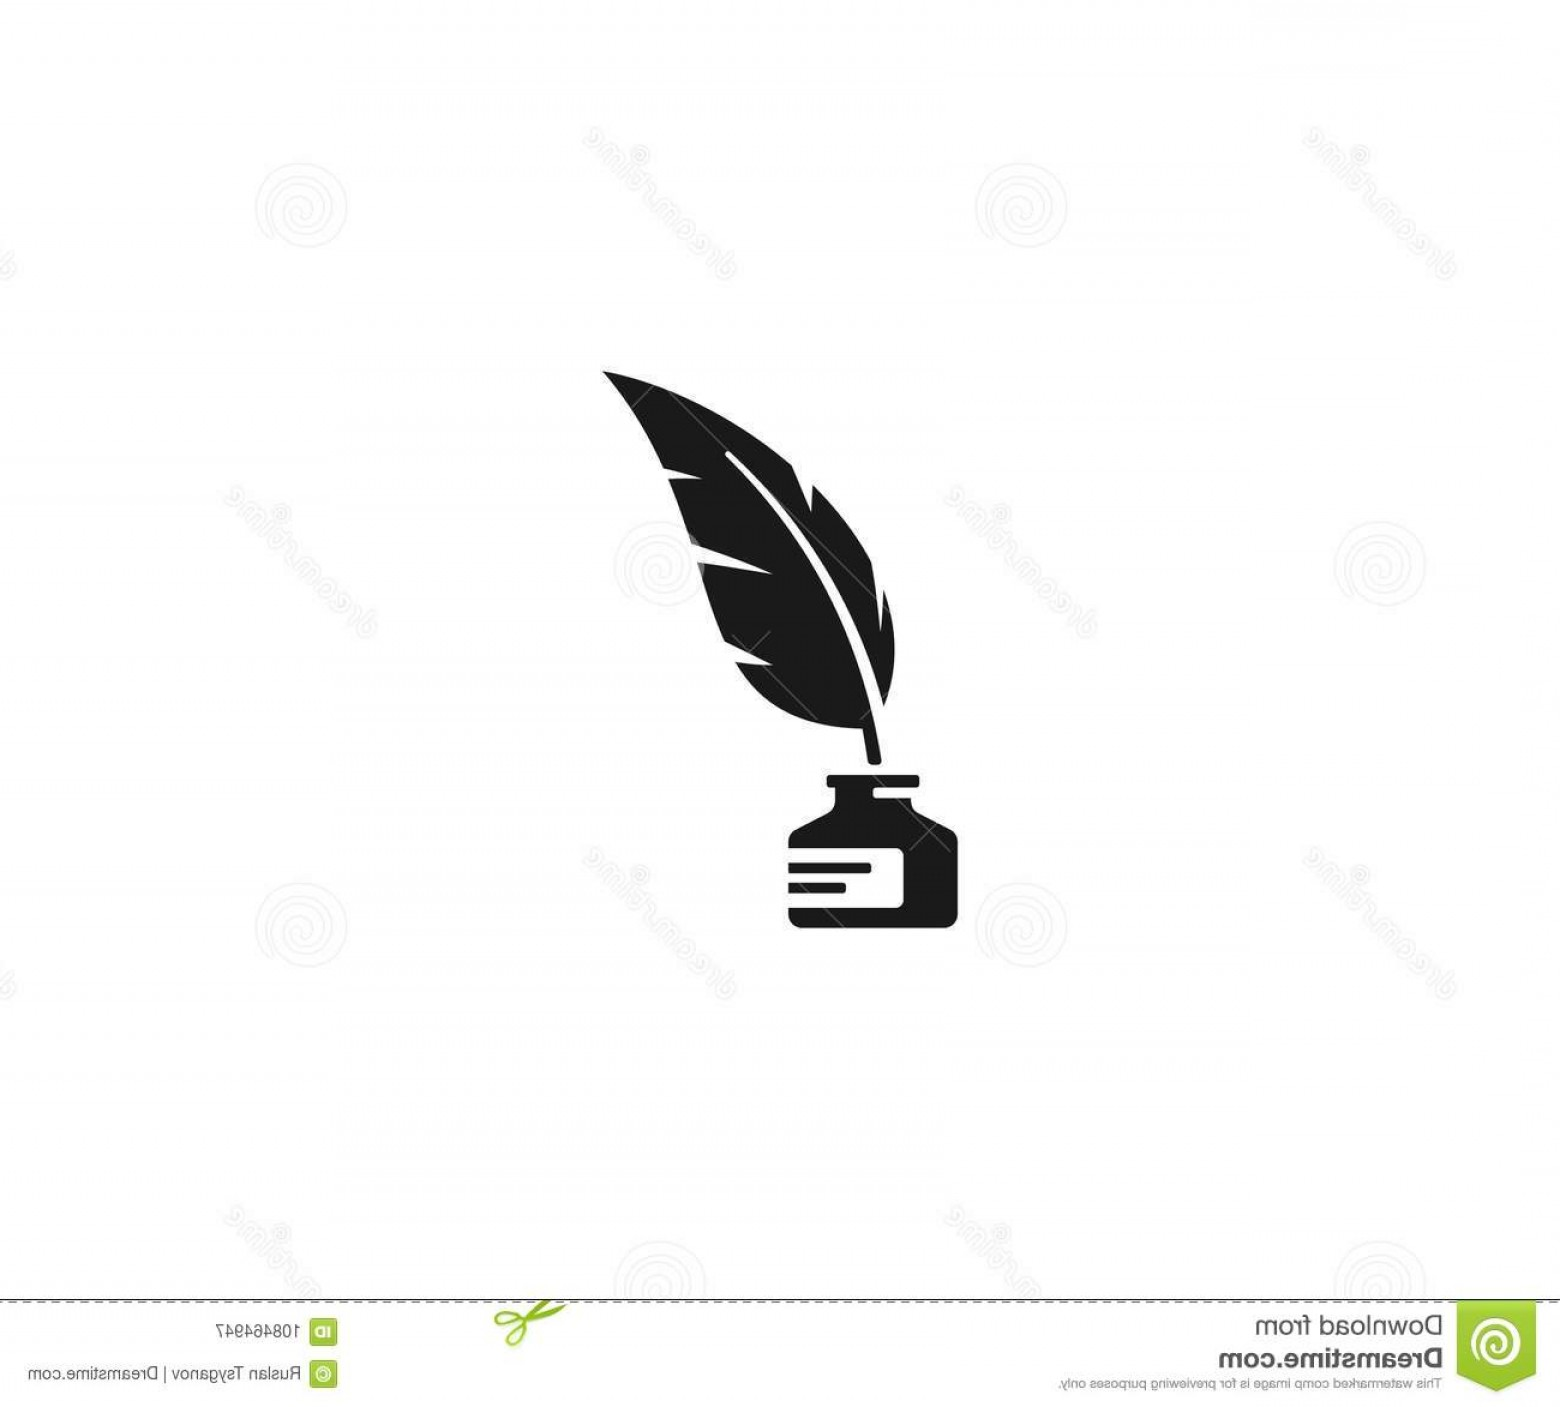 Quill Pen Vector: Inkwell Feather Pen Logo Template Ink Bottle Quill Vector Design Writer Illustration Image